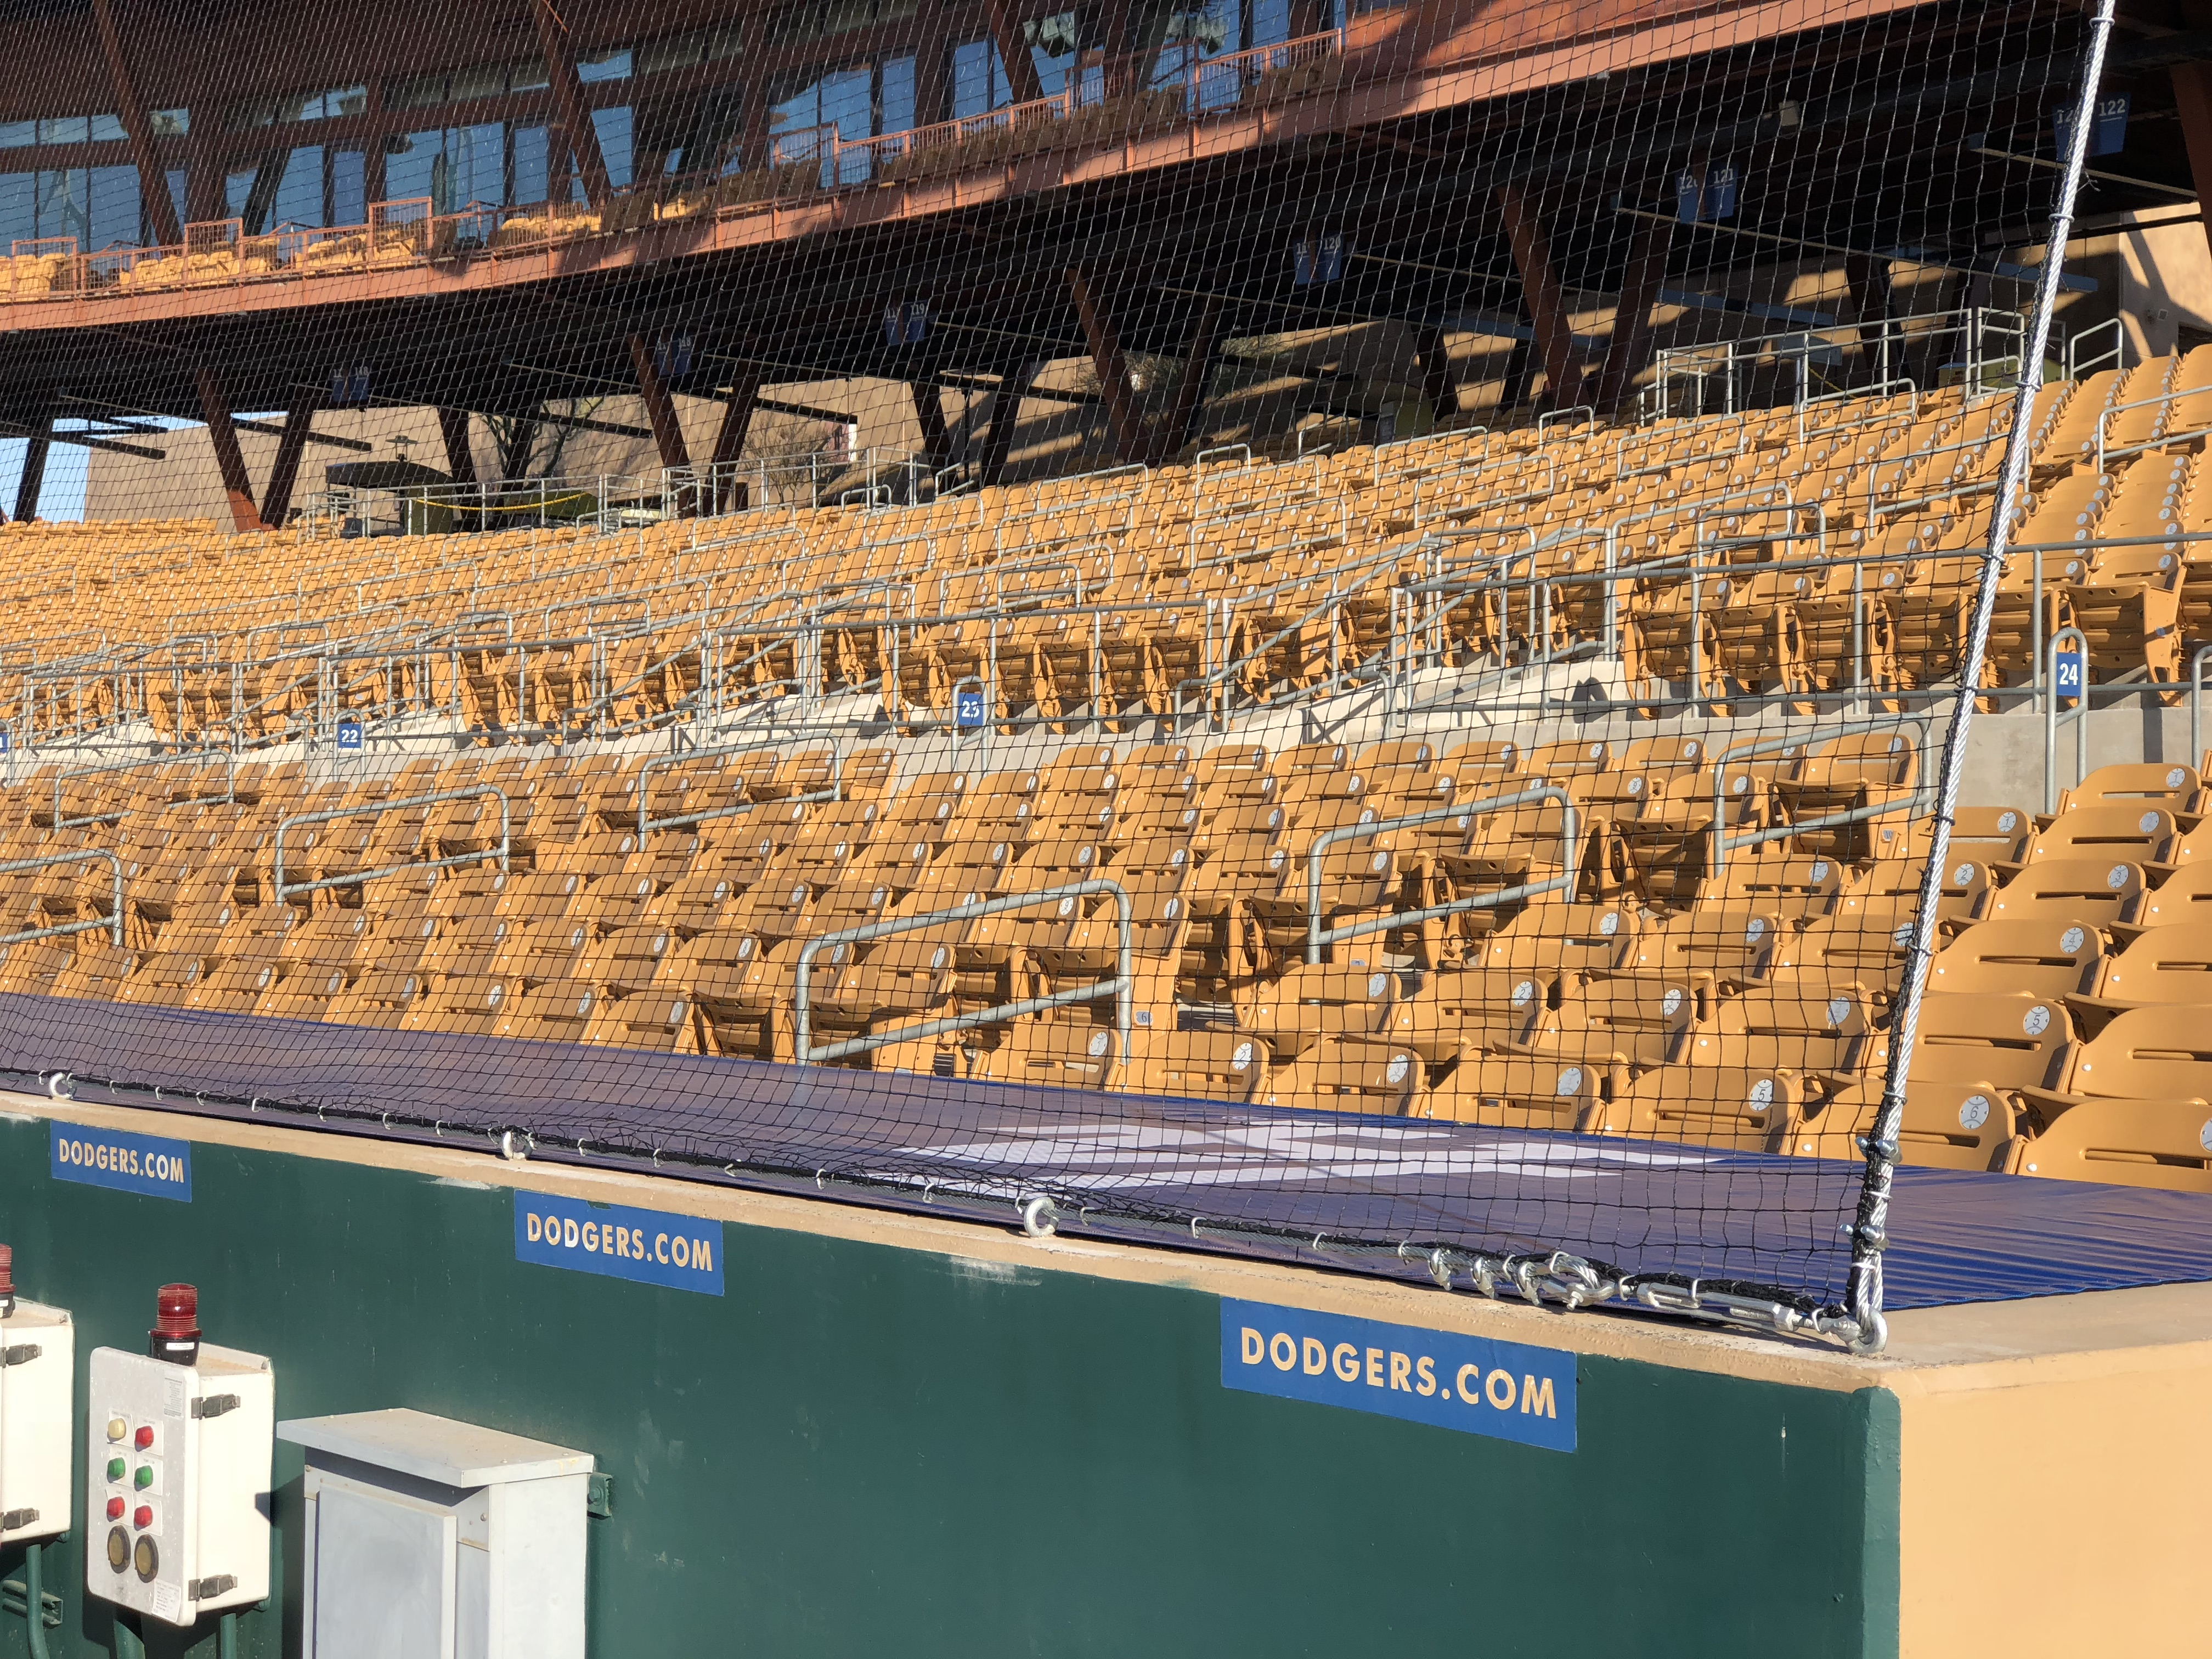 Protective Netting Extended At Both Dodger Stadium And Camelback